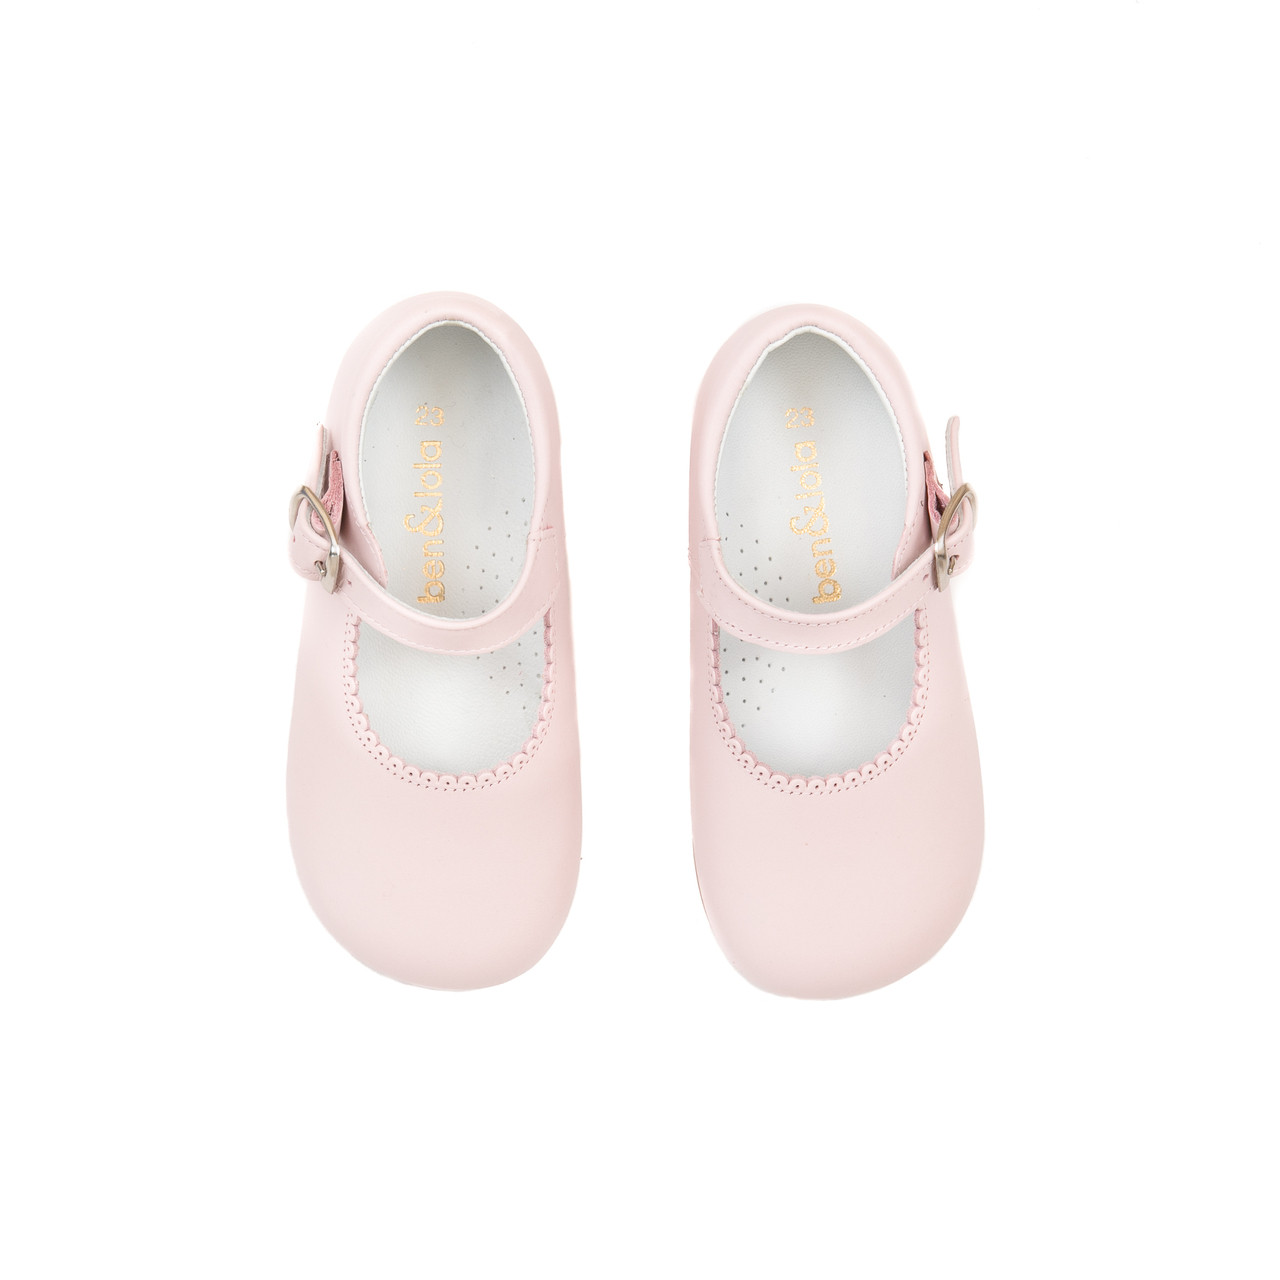 fbb1b2b25b ... Little Girl Rose Leather Mary Jane Shoes From Ben & Lola. Loading zoom